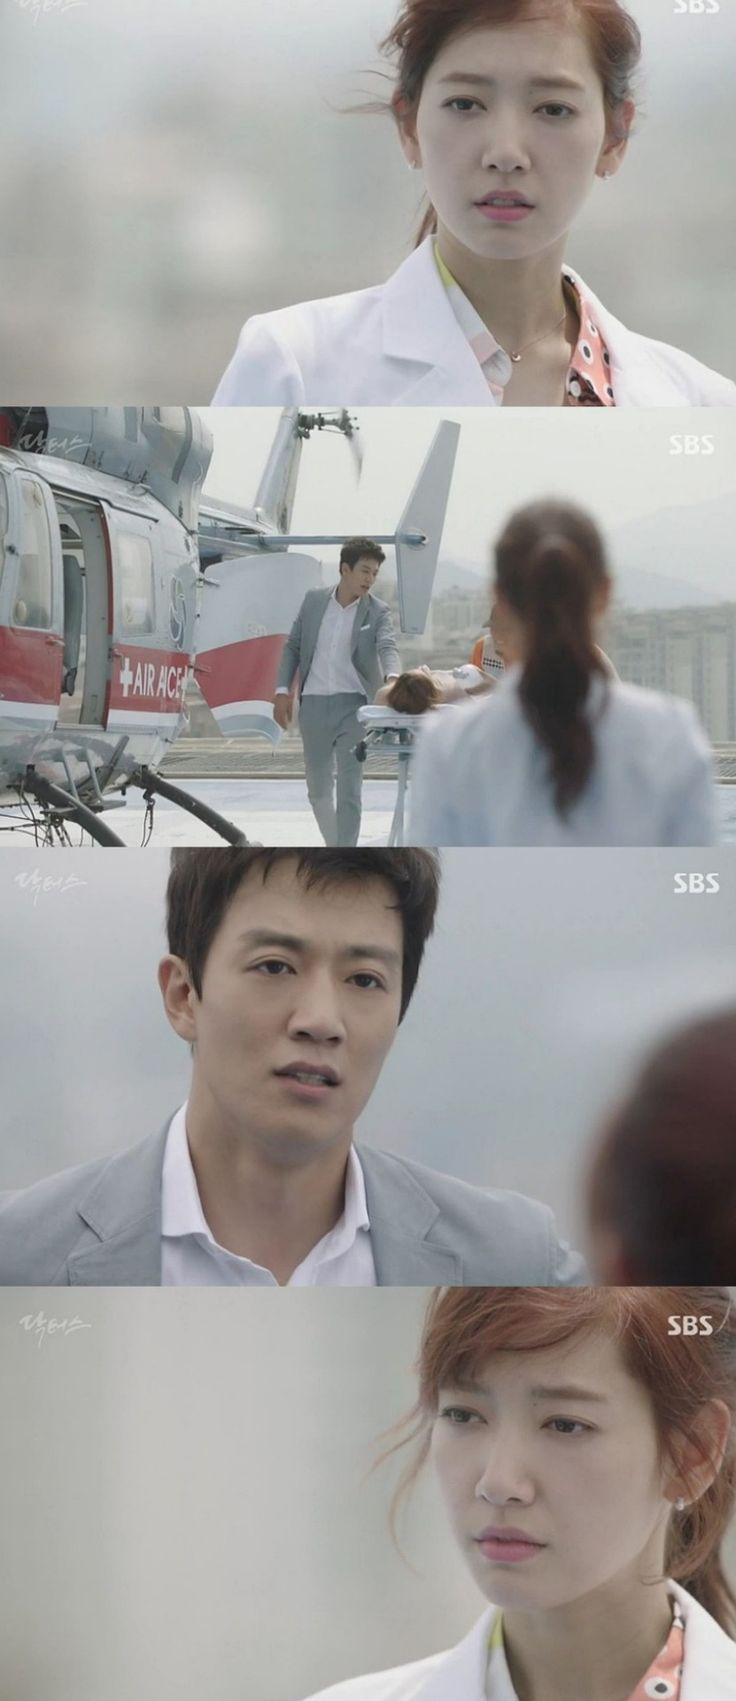 Added episode 4 captures for the Korean drama 'Doctors'.